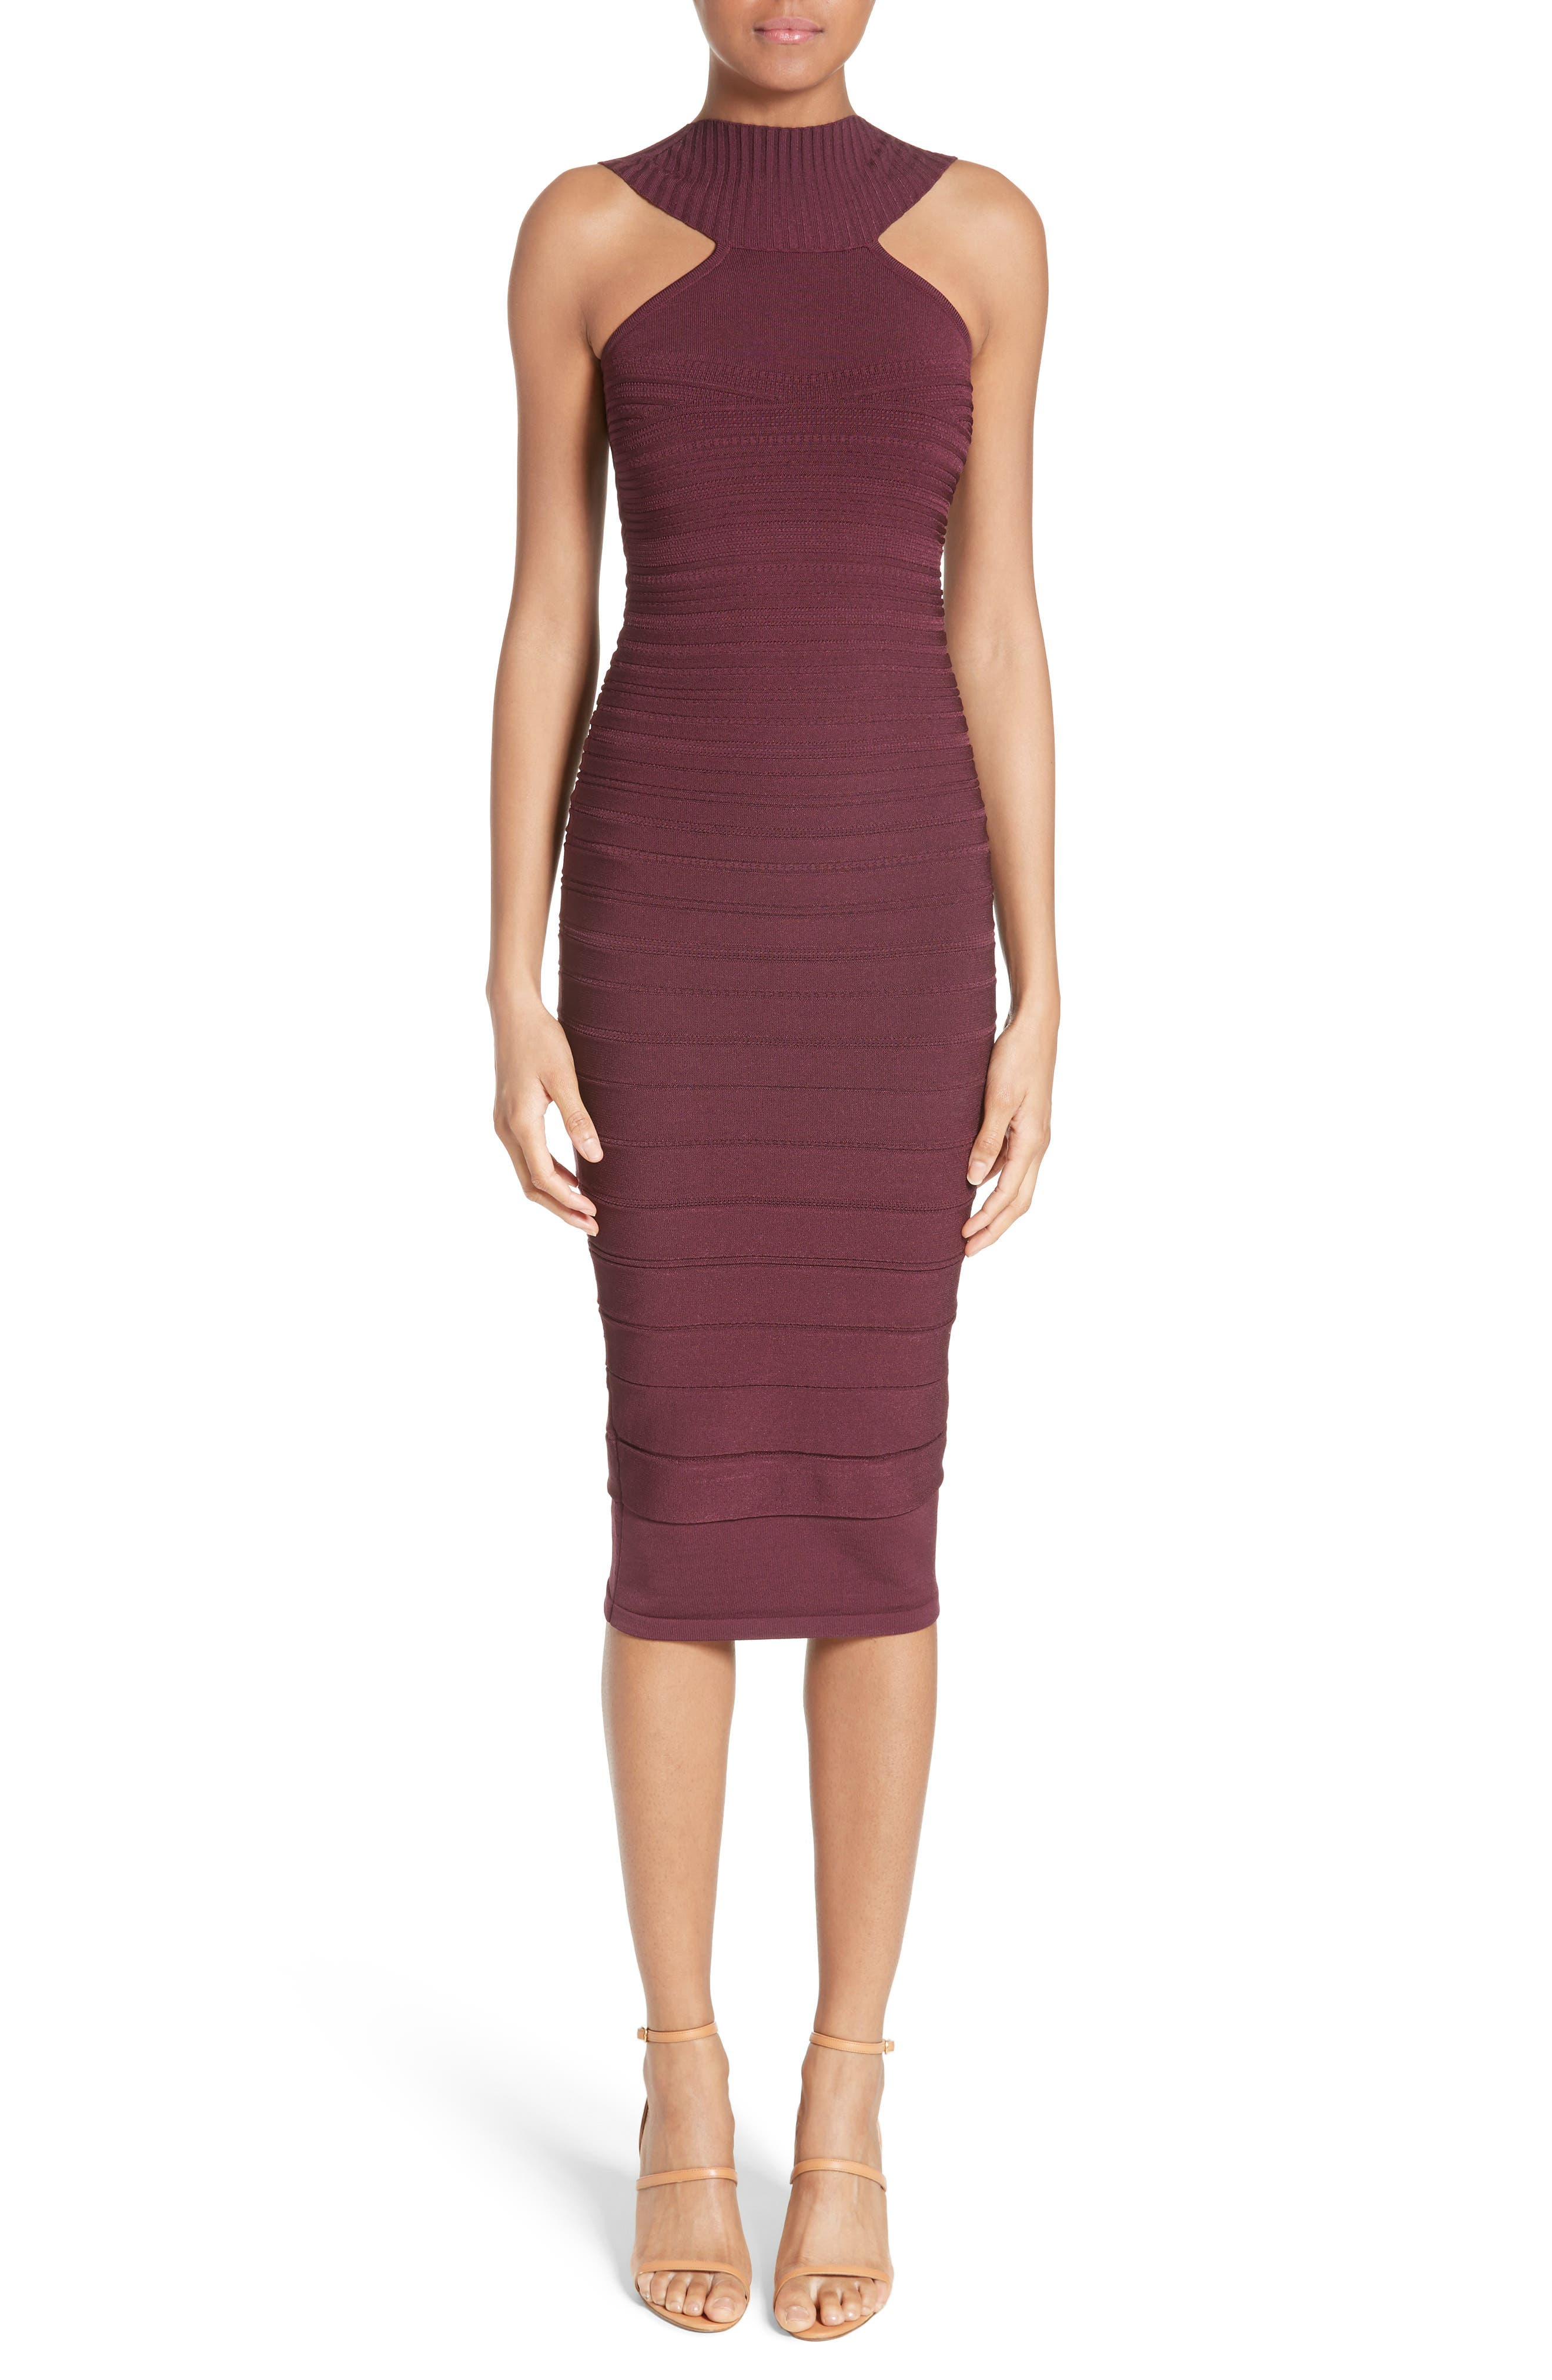 Cushnie et Ochs Knit High Neck Dress